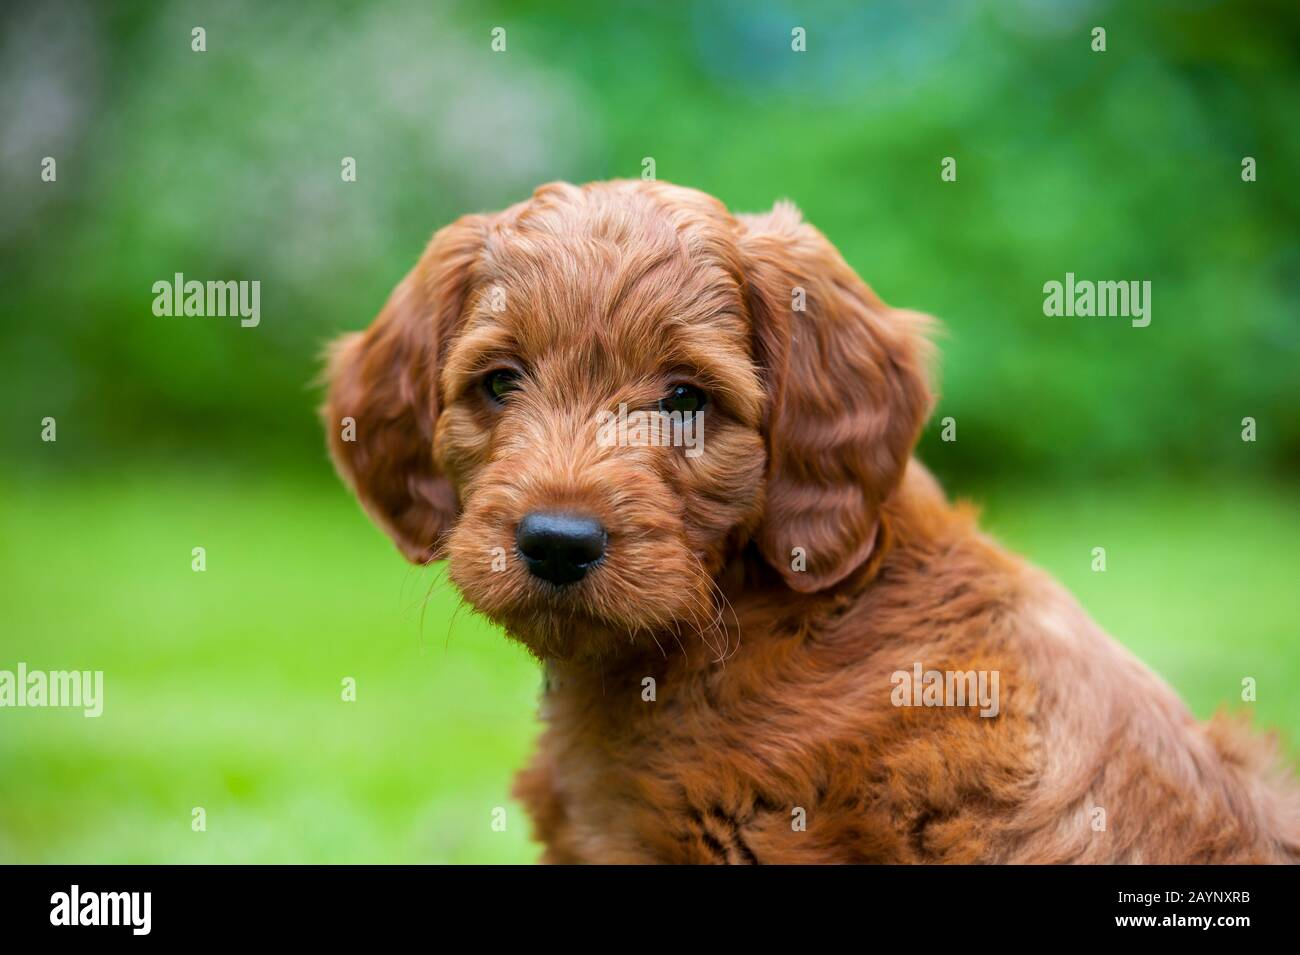 Portrait Of 8 Week Old Goldendoodle Male Puppy Stock Photo Alamy